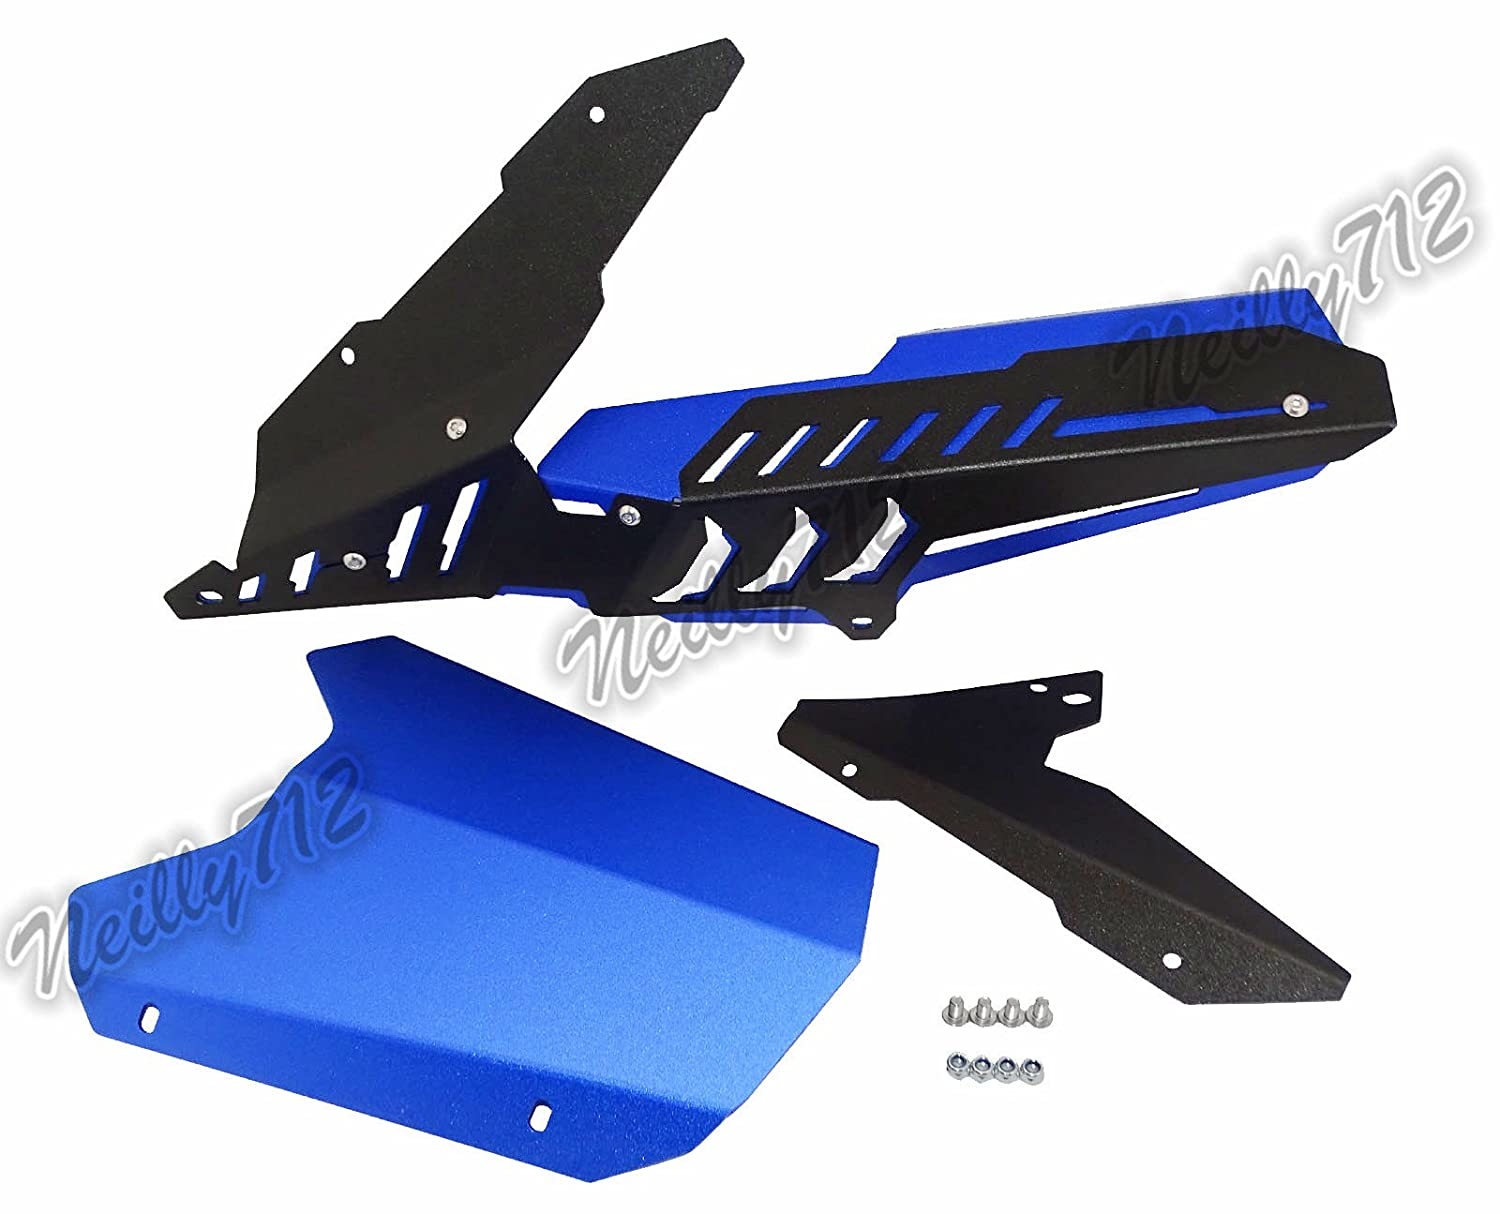 waase YZF-R3 YZF-R25 MT03 MT25 Motorcycle Rear Wheel Tire Hugger Fender Mudguard Mudflap with Chain Guard Cover Protector For Yamaha YZF R3 R25 MT-03 MT-25 2013 2014 2015 2016 2017 Black